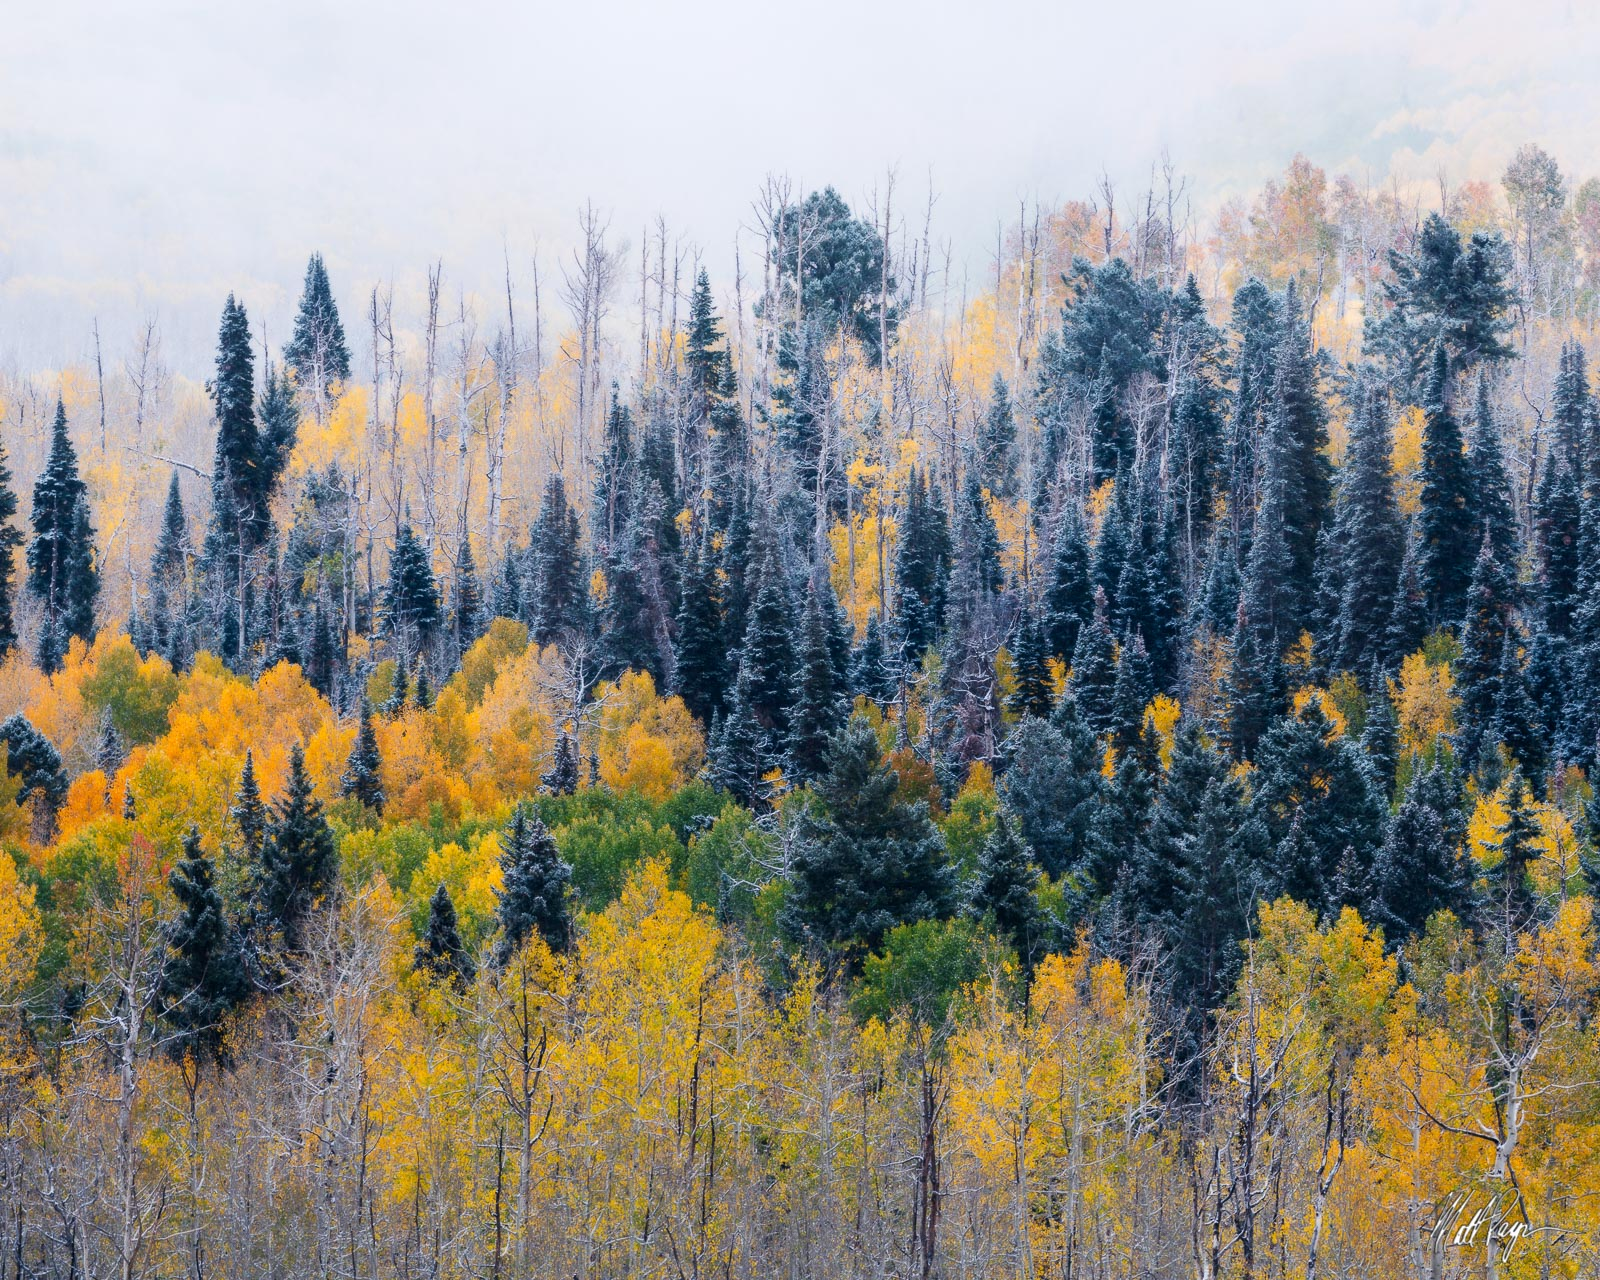 Aspen Trees, Autumn, Blue Spruce, Colorado, Landscape, Ridgway, Snow, Landscape Photography, photo